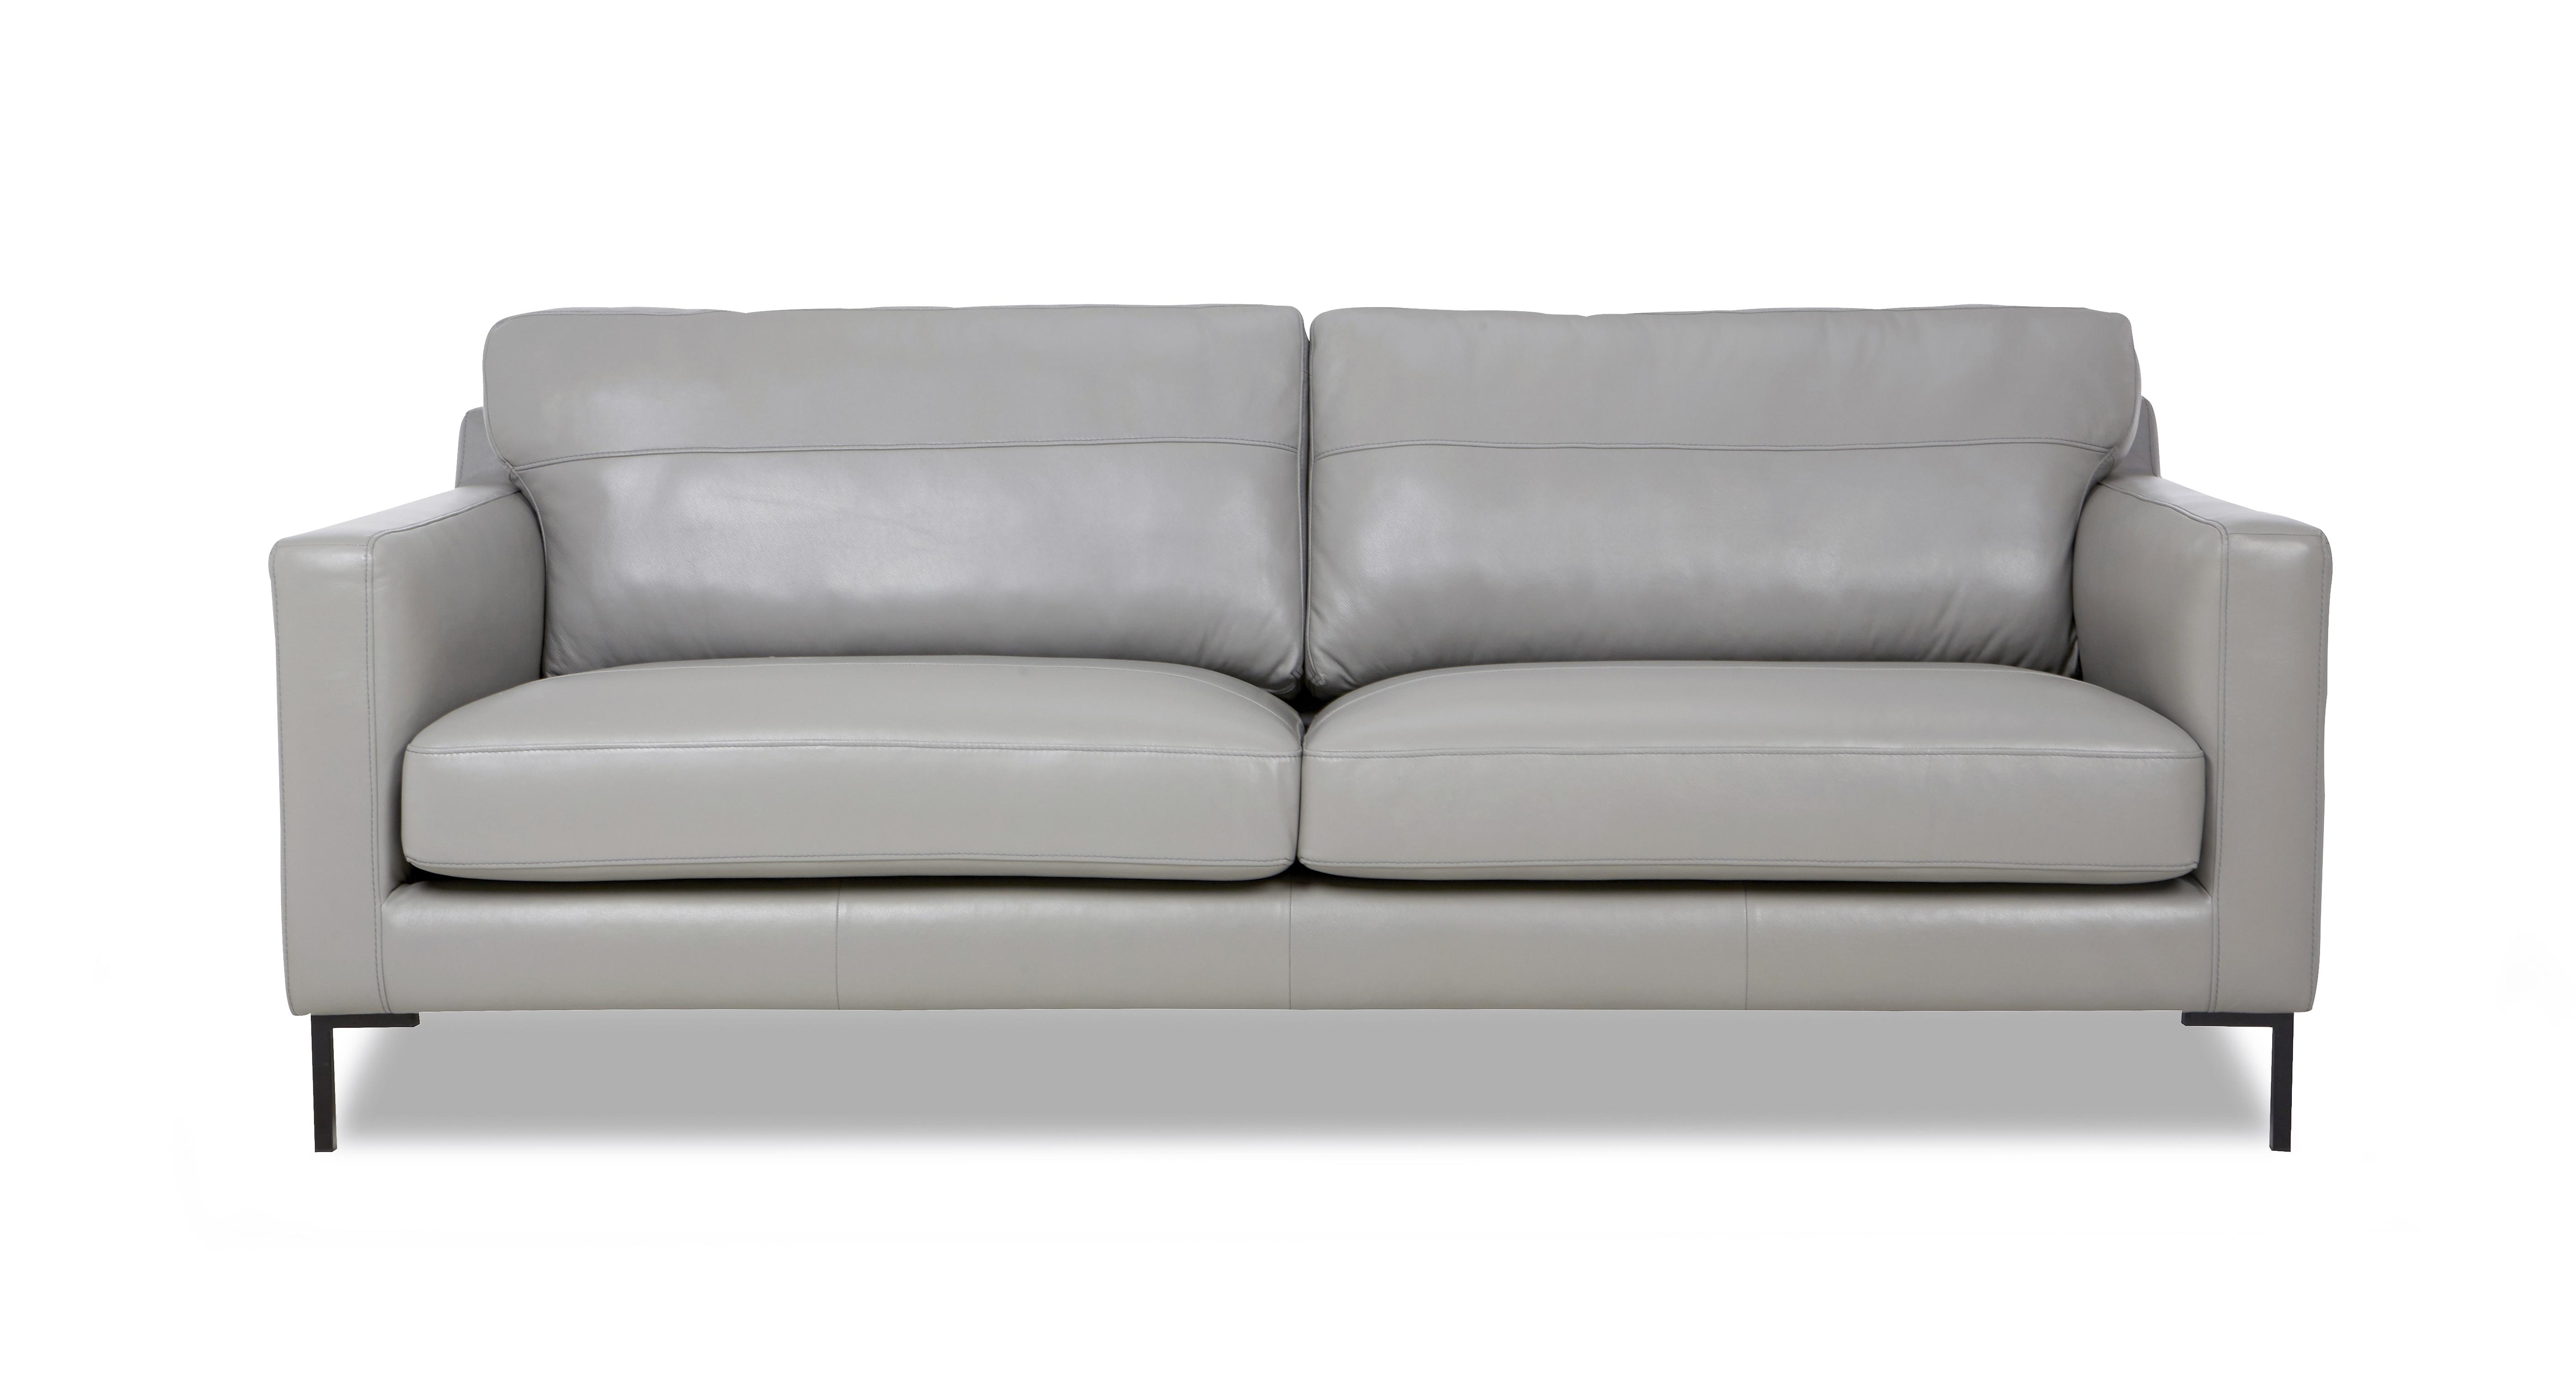 Dfs gray sofa Dfs 4 seater leather sofa